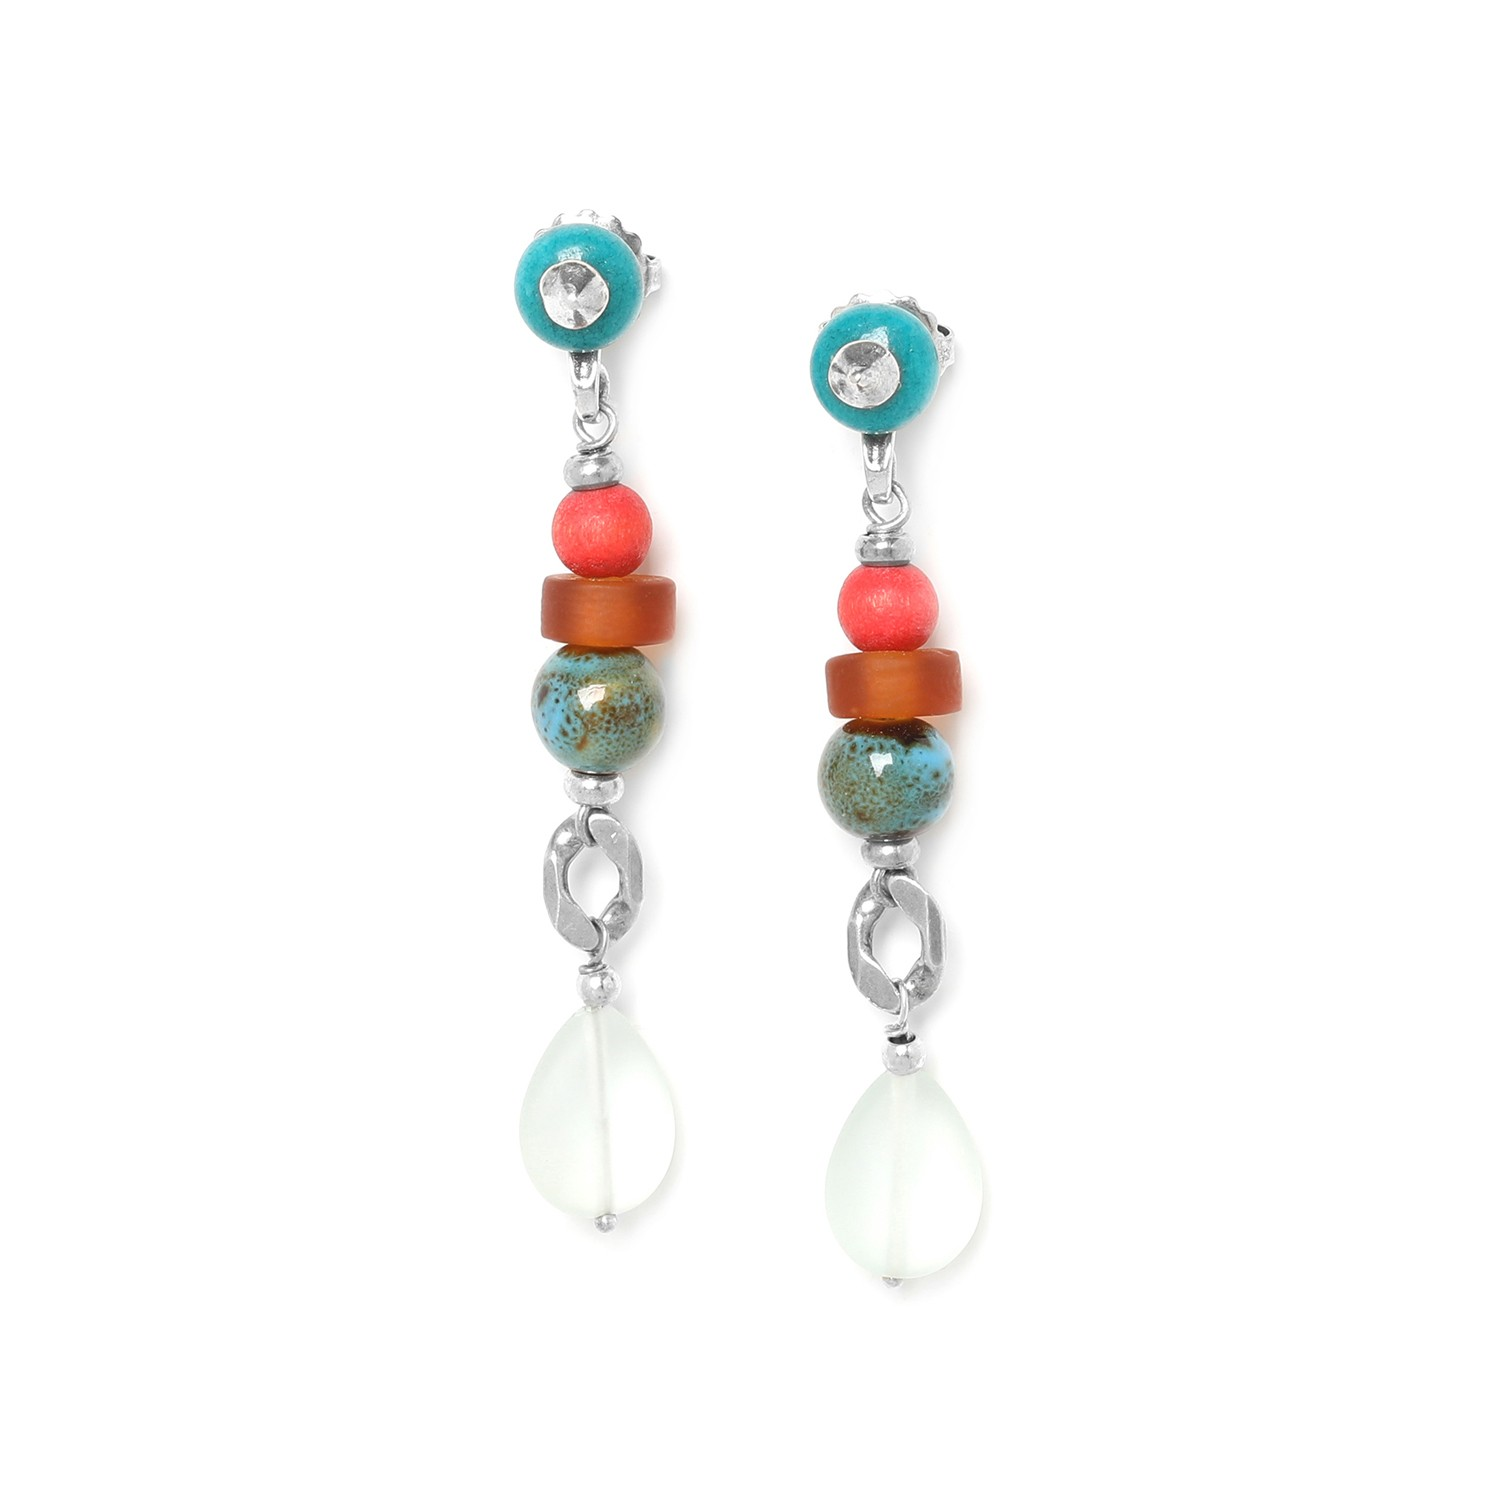 KIRIBATI drop earrings